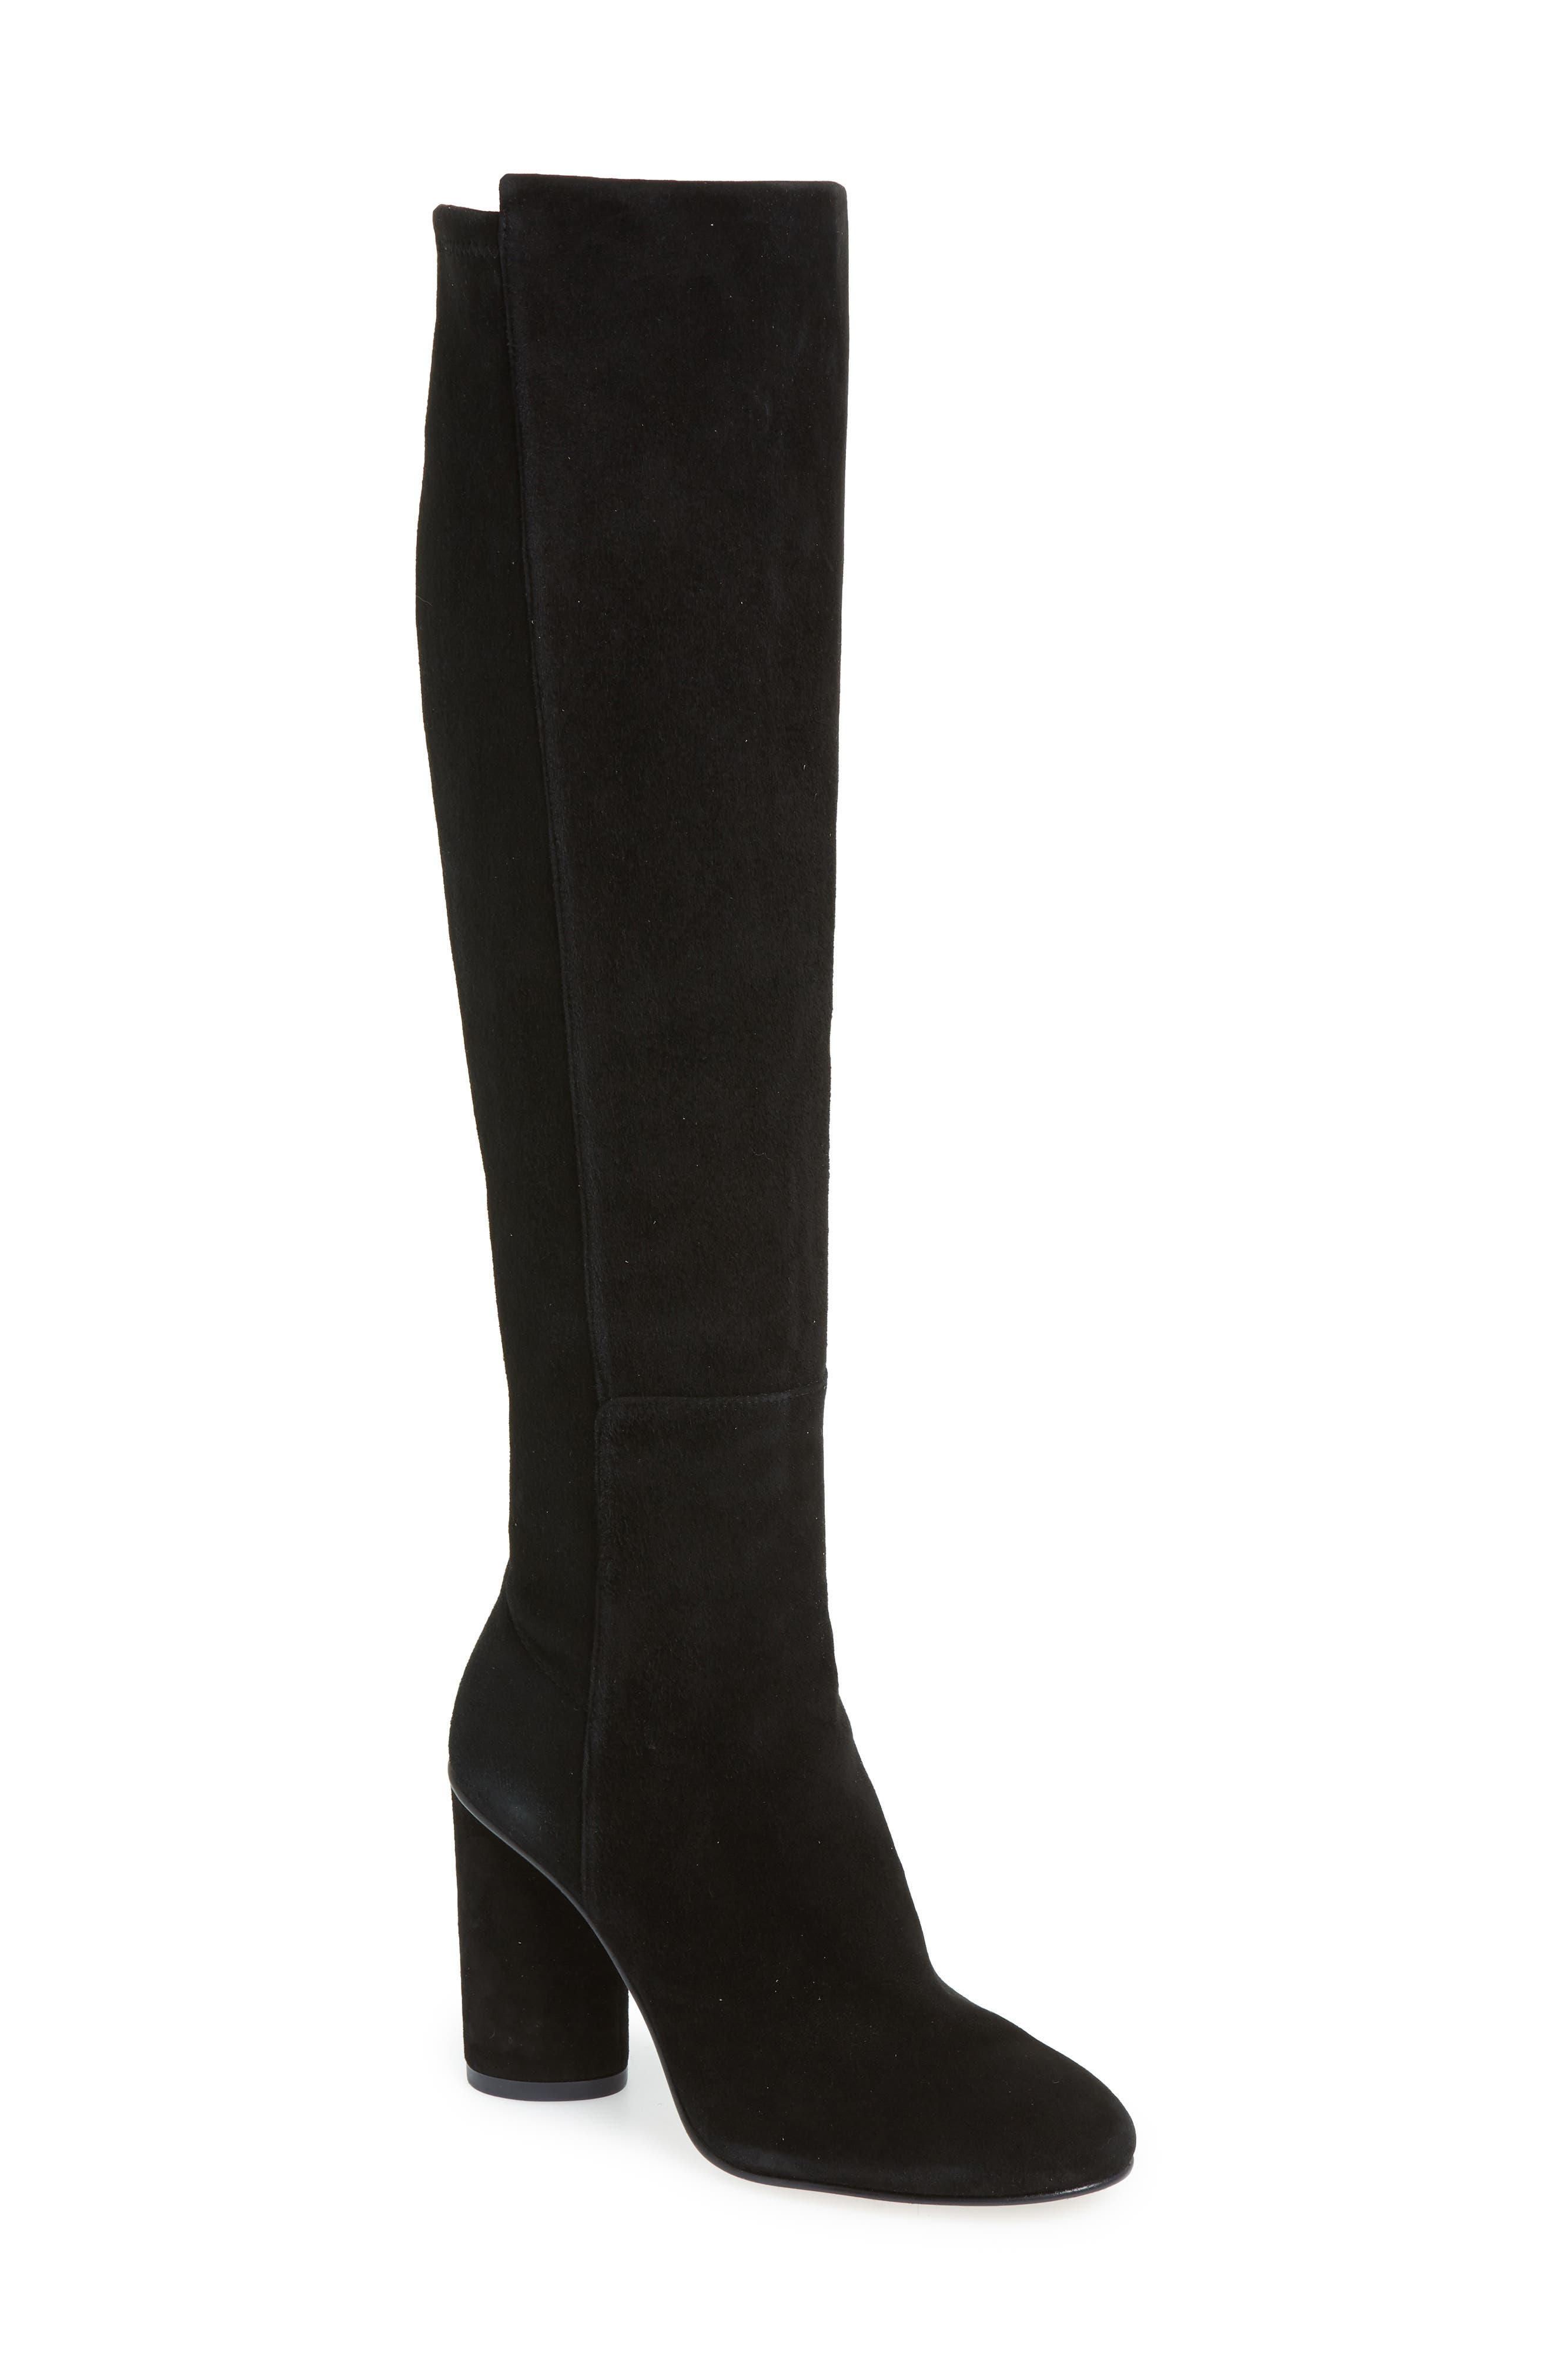 Eloise Over the Knee Boot,                             Main thumbnail 1, color,                             BLACK SUEDE